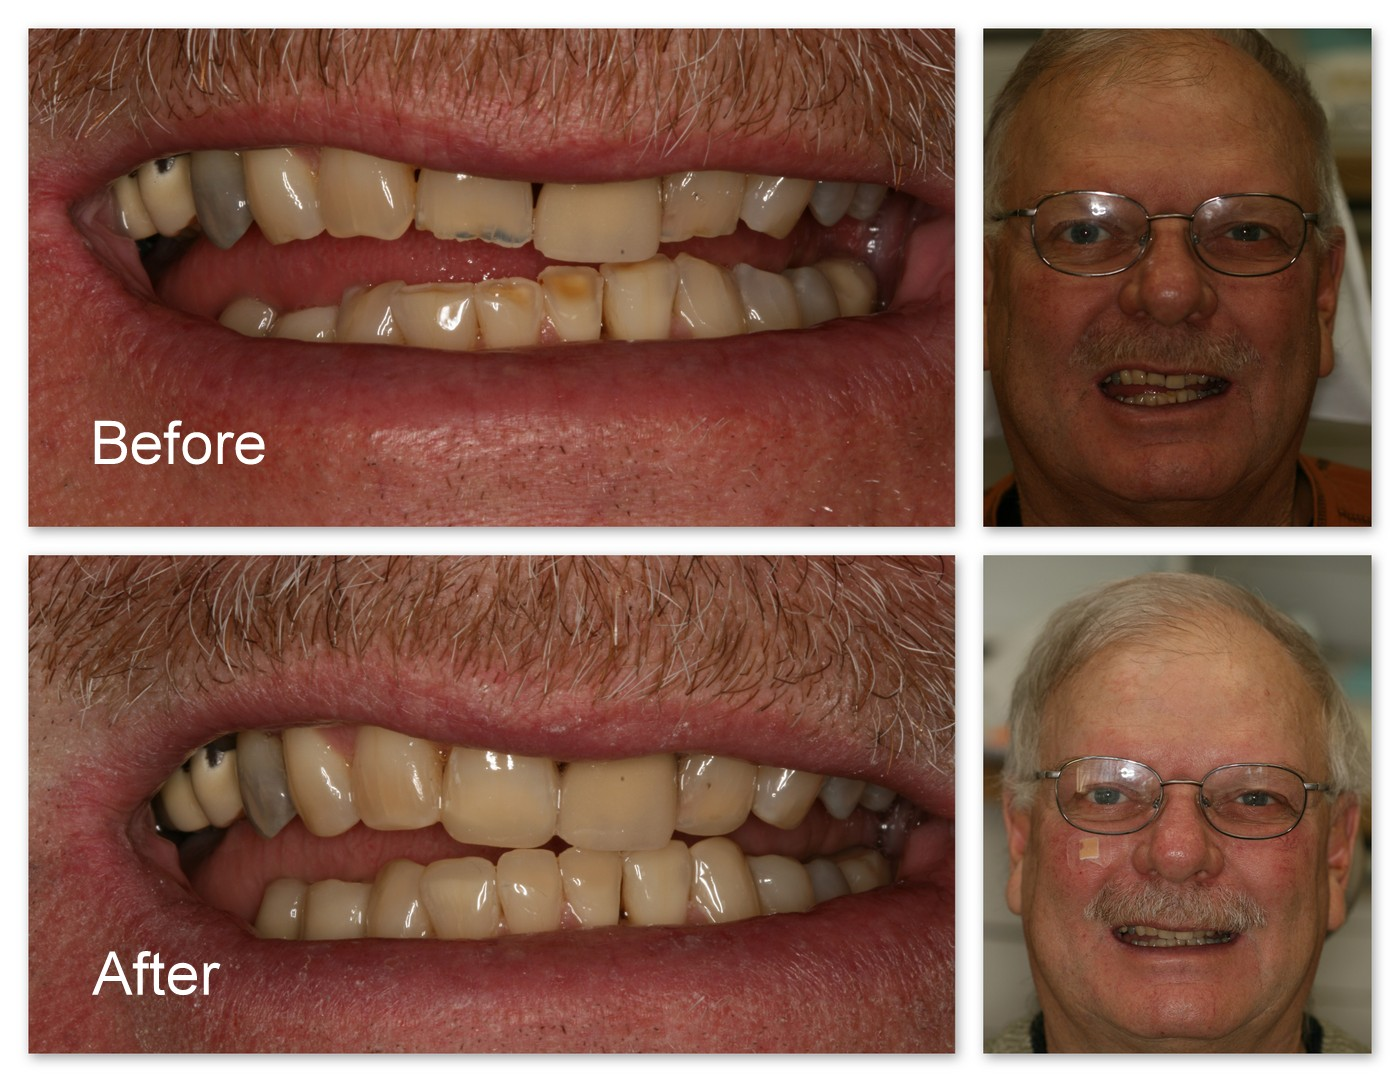 Before- This patient had extremely worn teeth. After- Dr. Jack Hosner of Portage, MI bonded composite resin to restore and protect these teeth which improved overall esthetics.